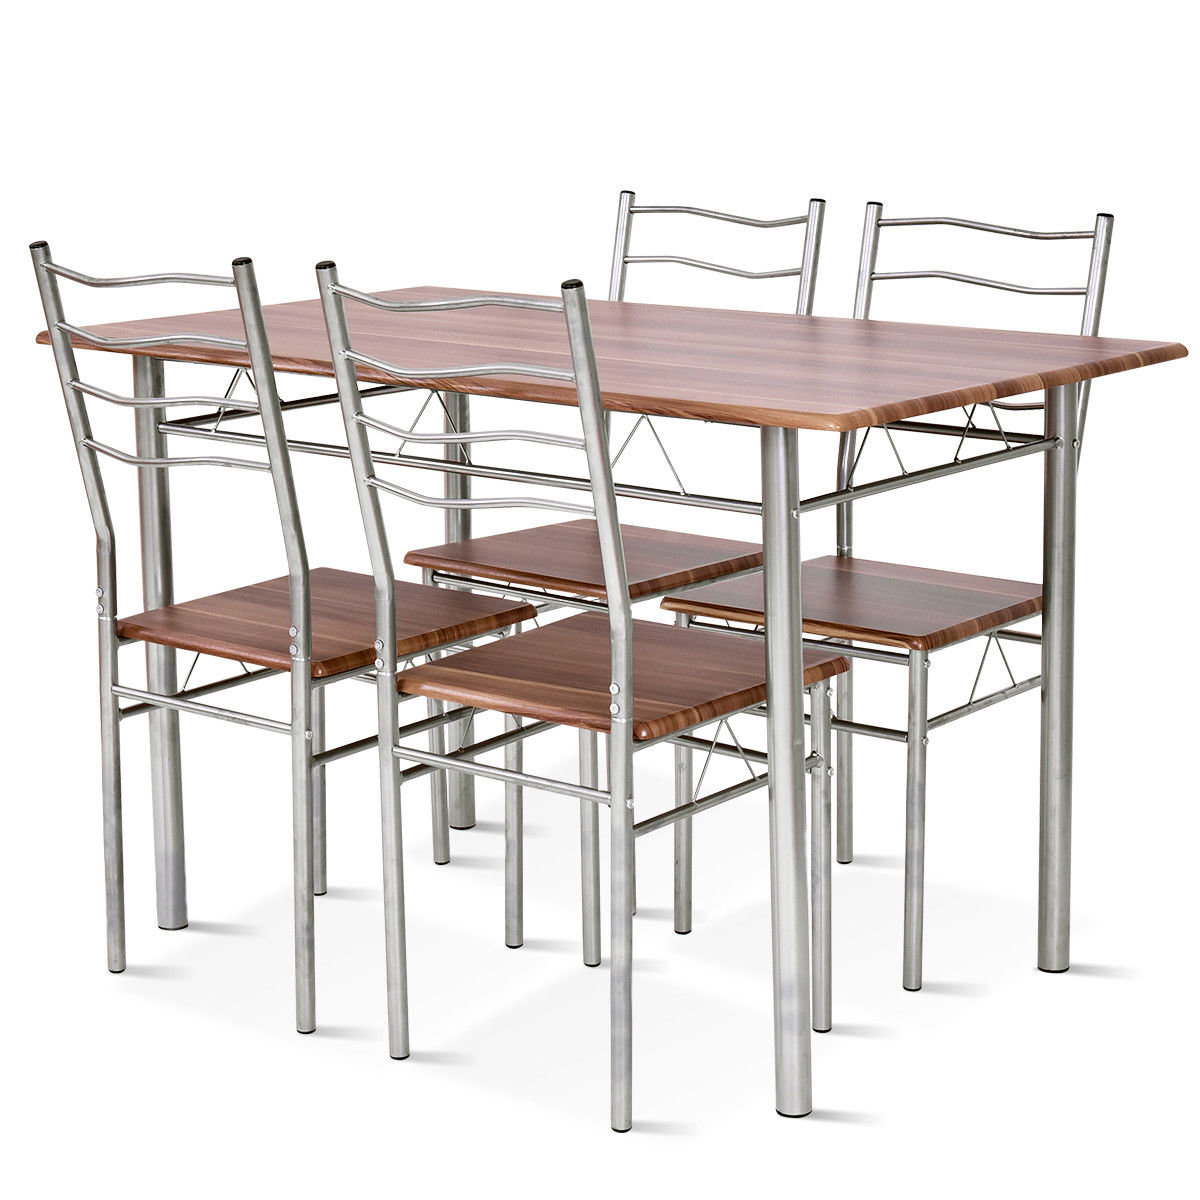 Casiano 5 Piece Dining Set Intended For Latest Mulvey 5 Piece Dining Sets (Image 2 of 20)